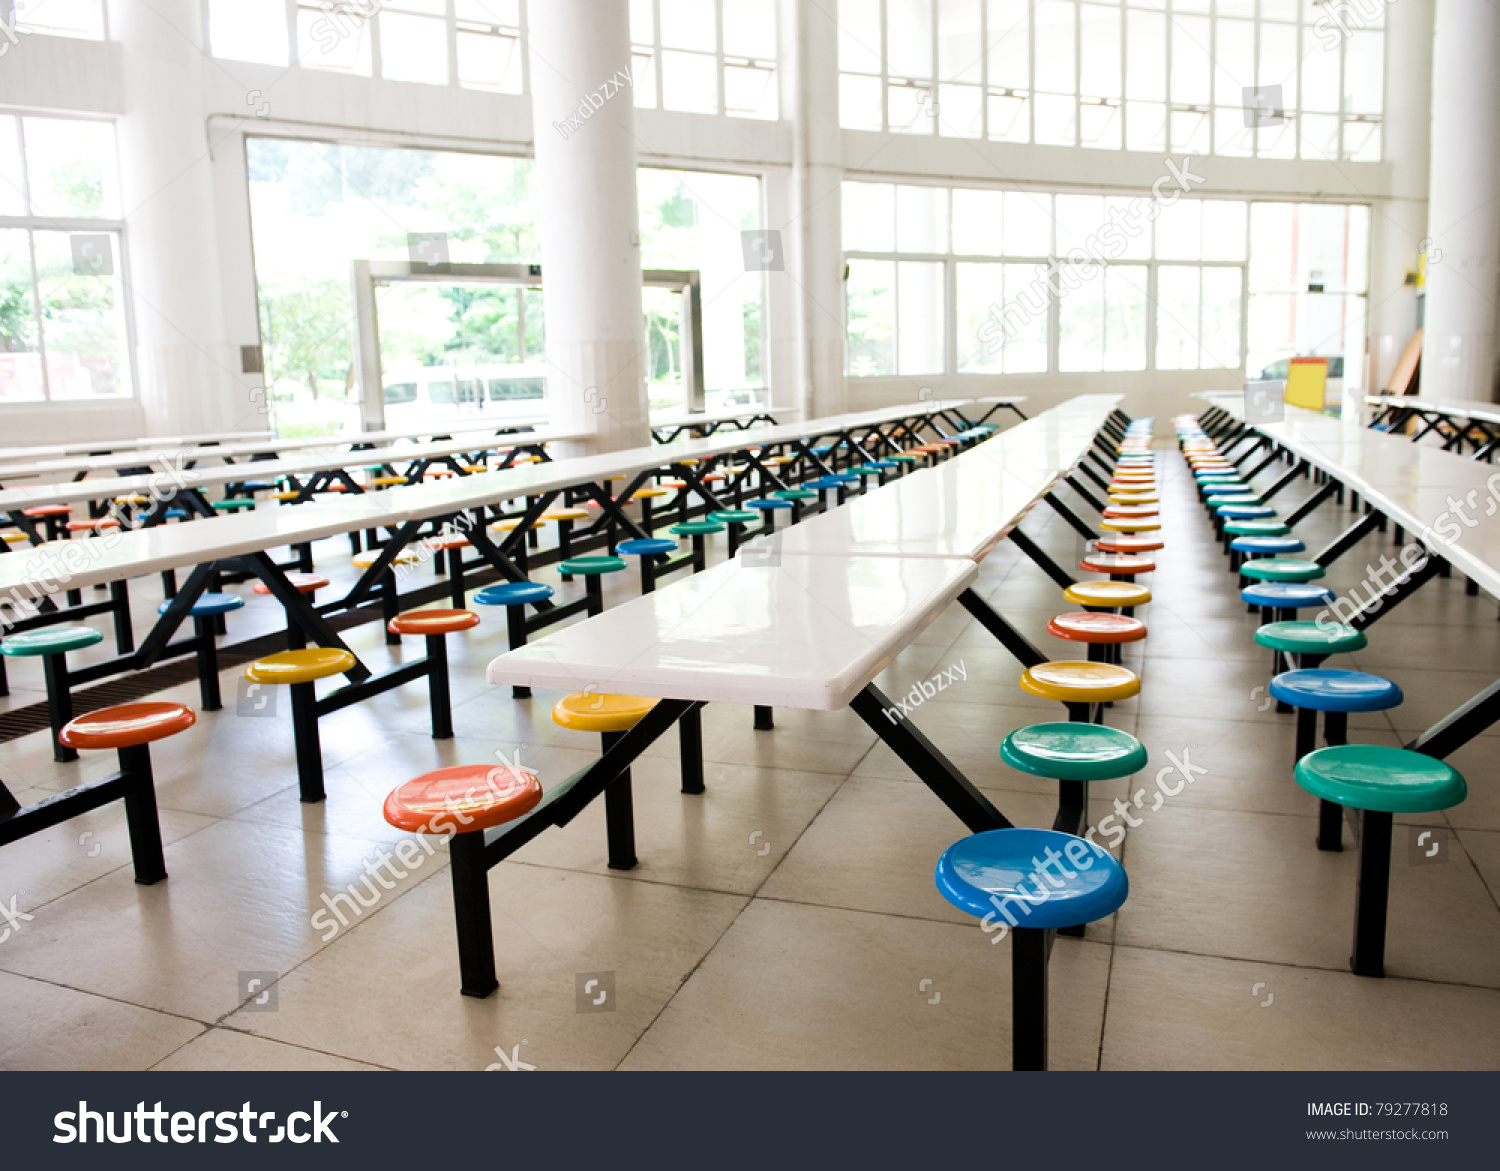 Clean cafeteria tables - Clean School Cafeteria With Many Empty Seats And Tables